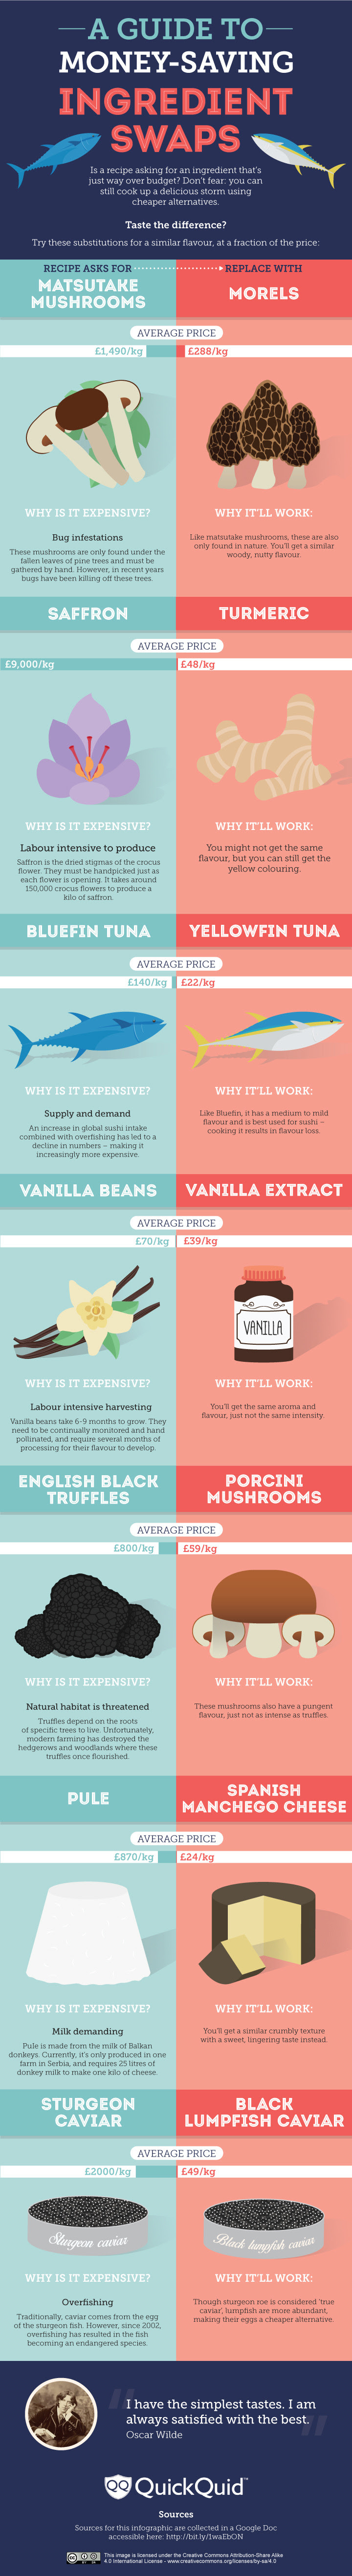 Infographic: A Guide To Money-Saving Ingredient Swaps